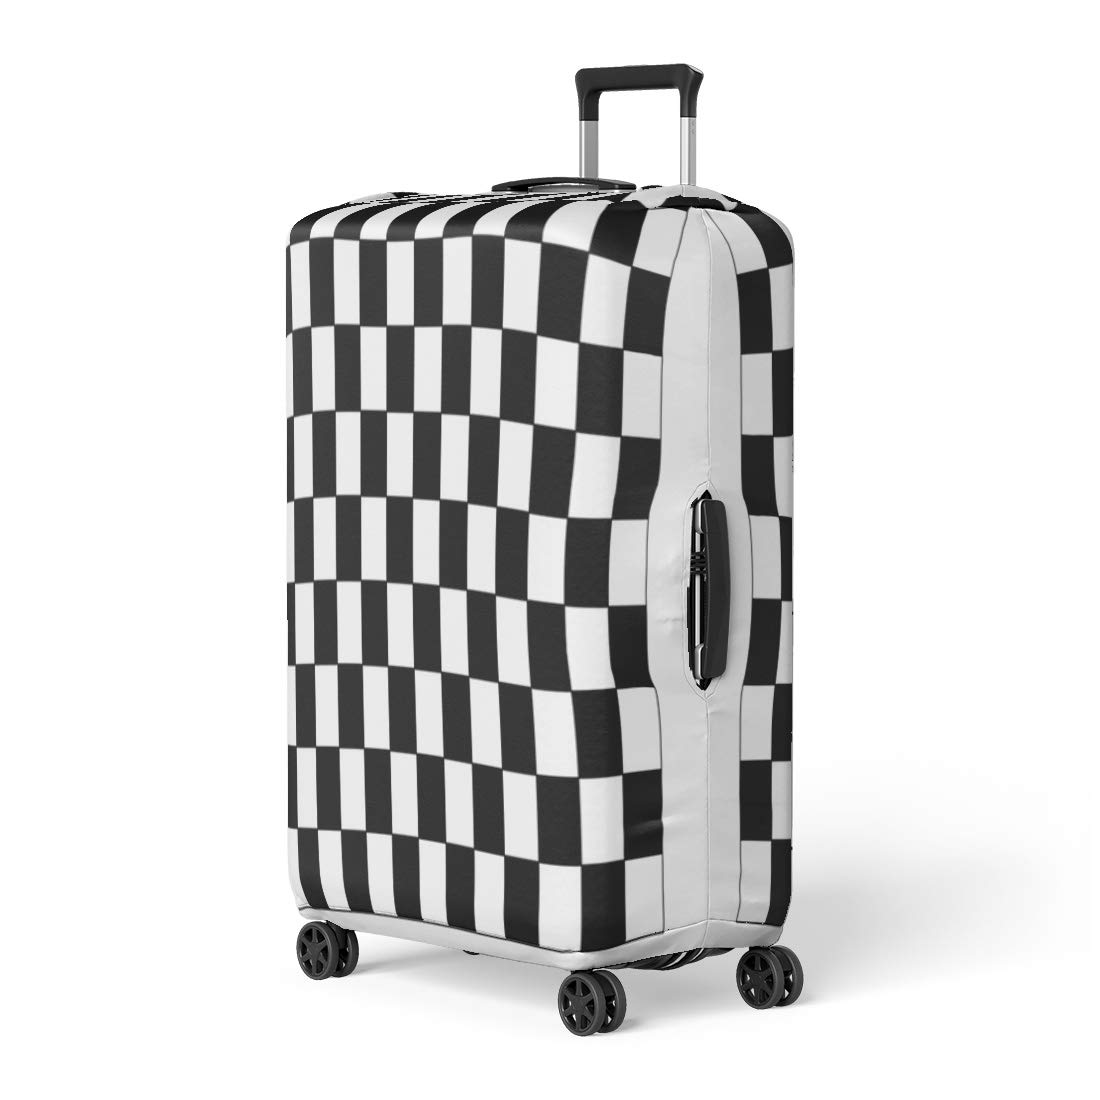 0597d10b7db1 Amazon.com: Pinbeam Luggage Cover Race Checkered Flag Racing White ...